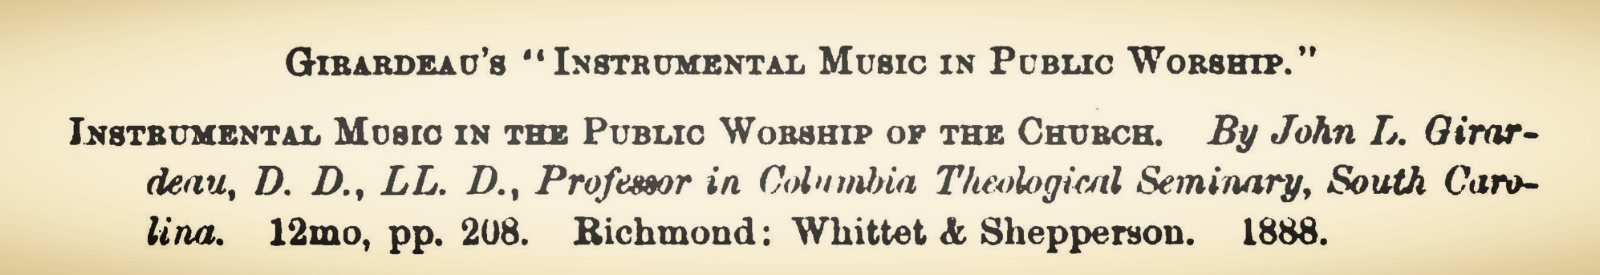 Dabney, Robert Lewis, Review of Girardeau's Instrumental Music in Public Worship Title Page.jpg